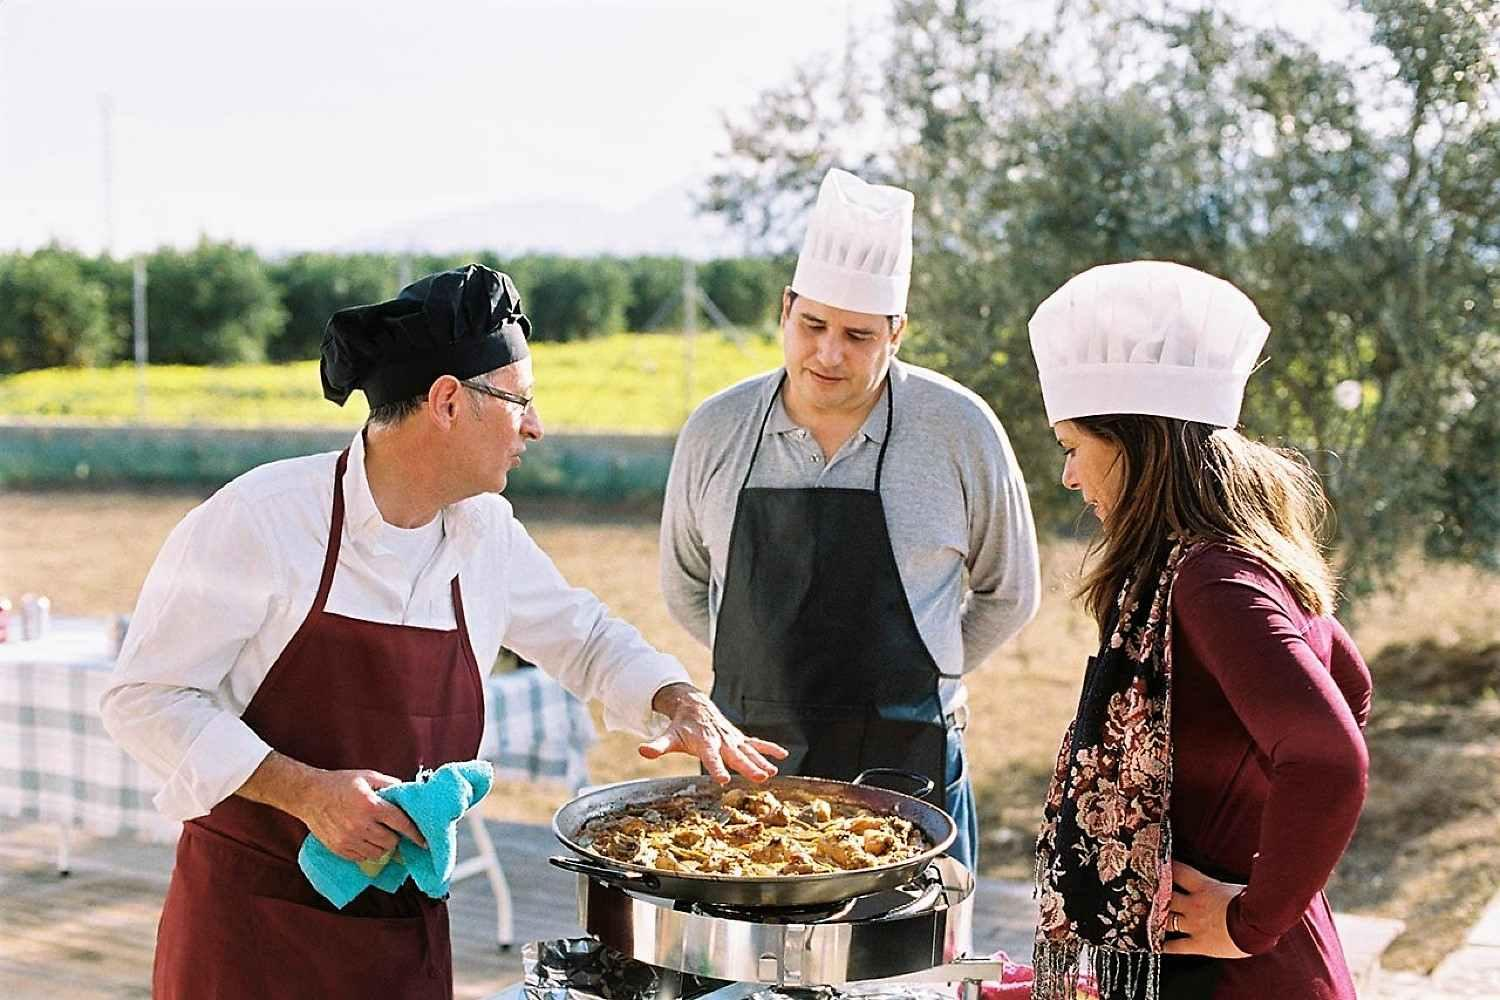 Outdoor paella cooking in Valencia